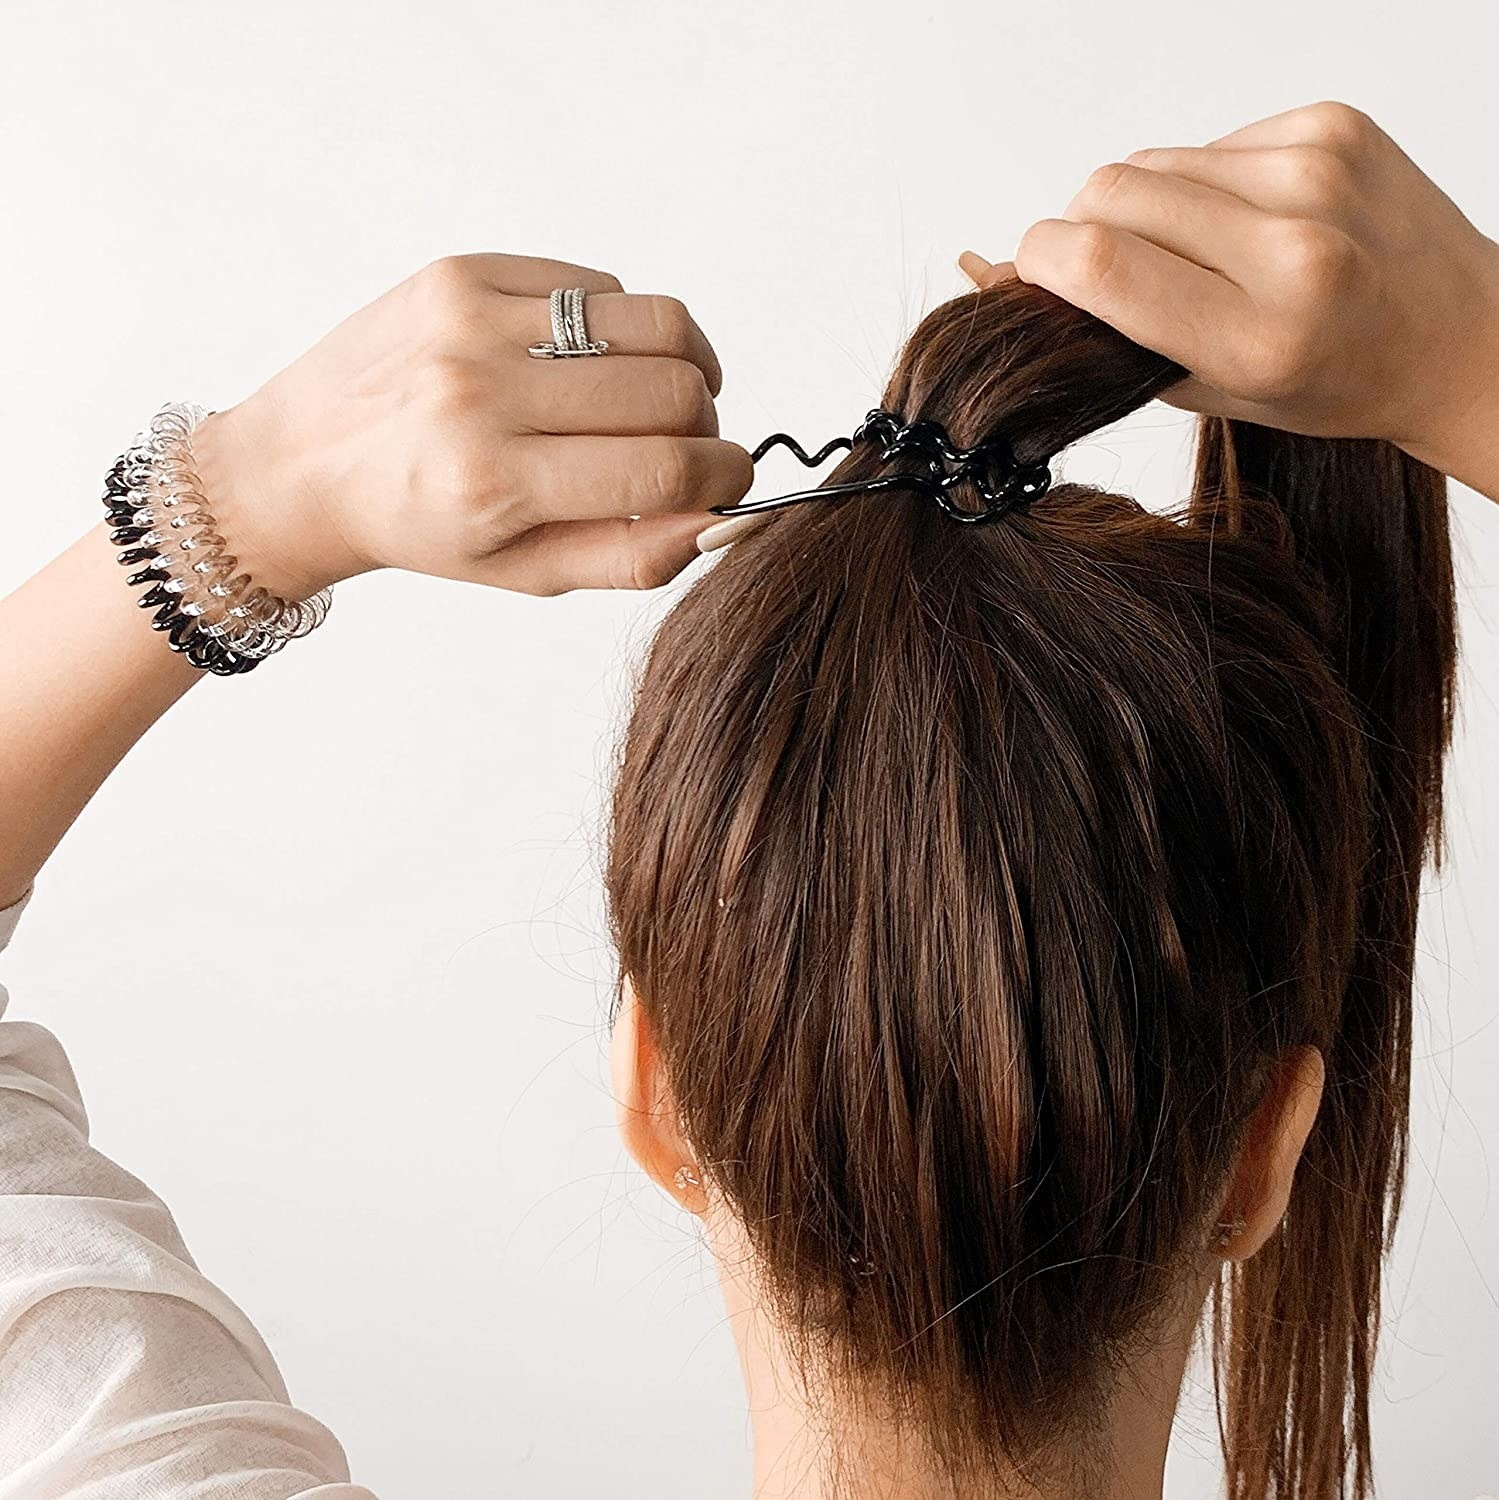 A woman tying a ponytail with coil hair tie